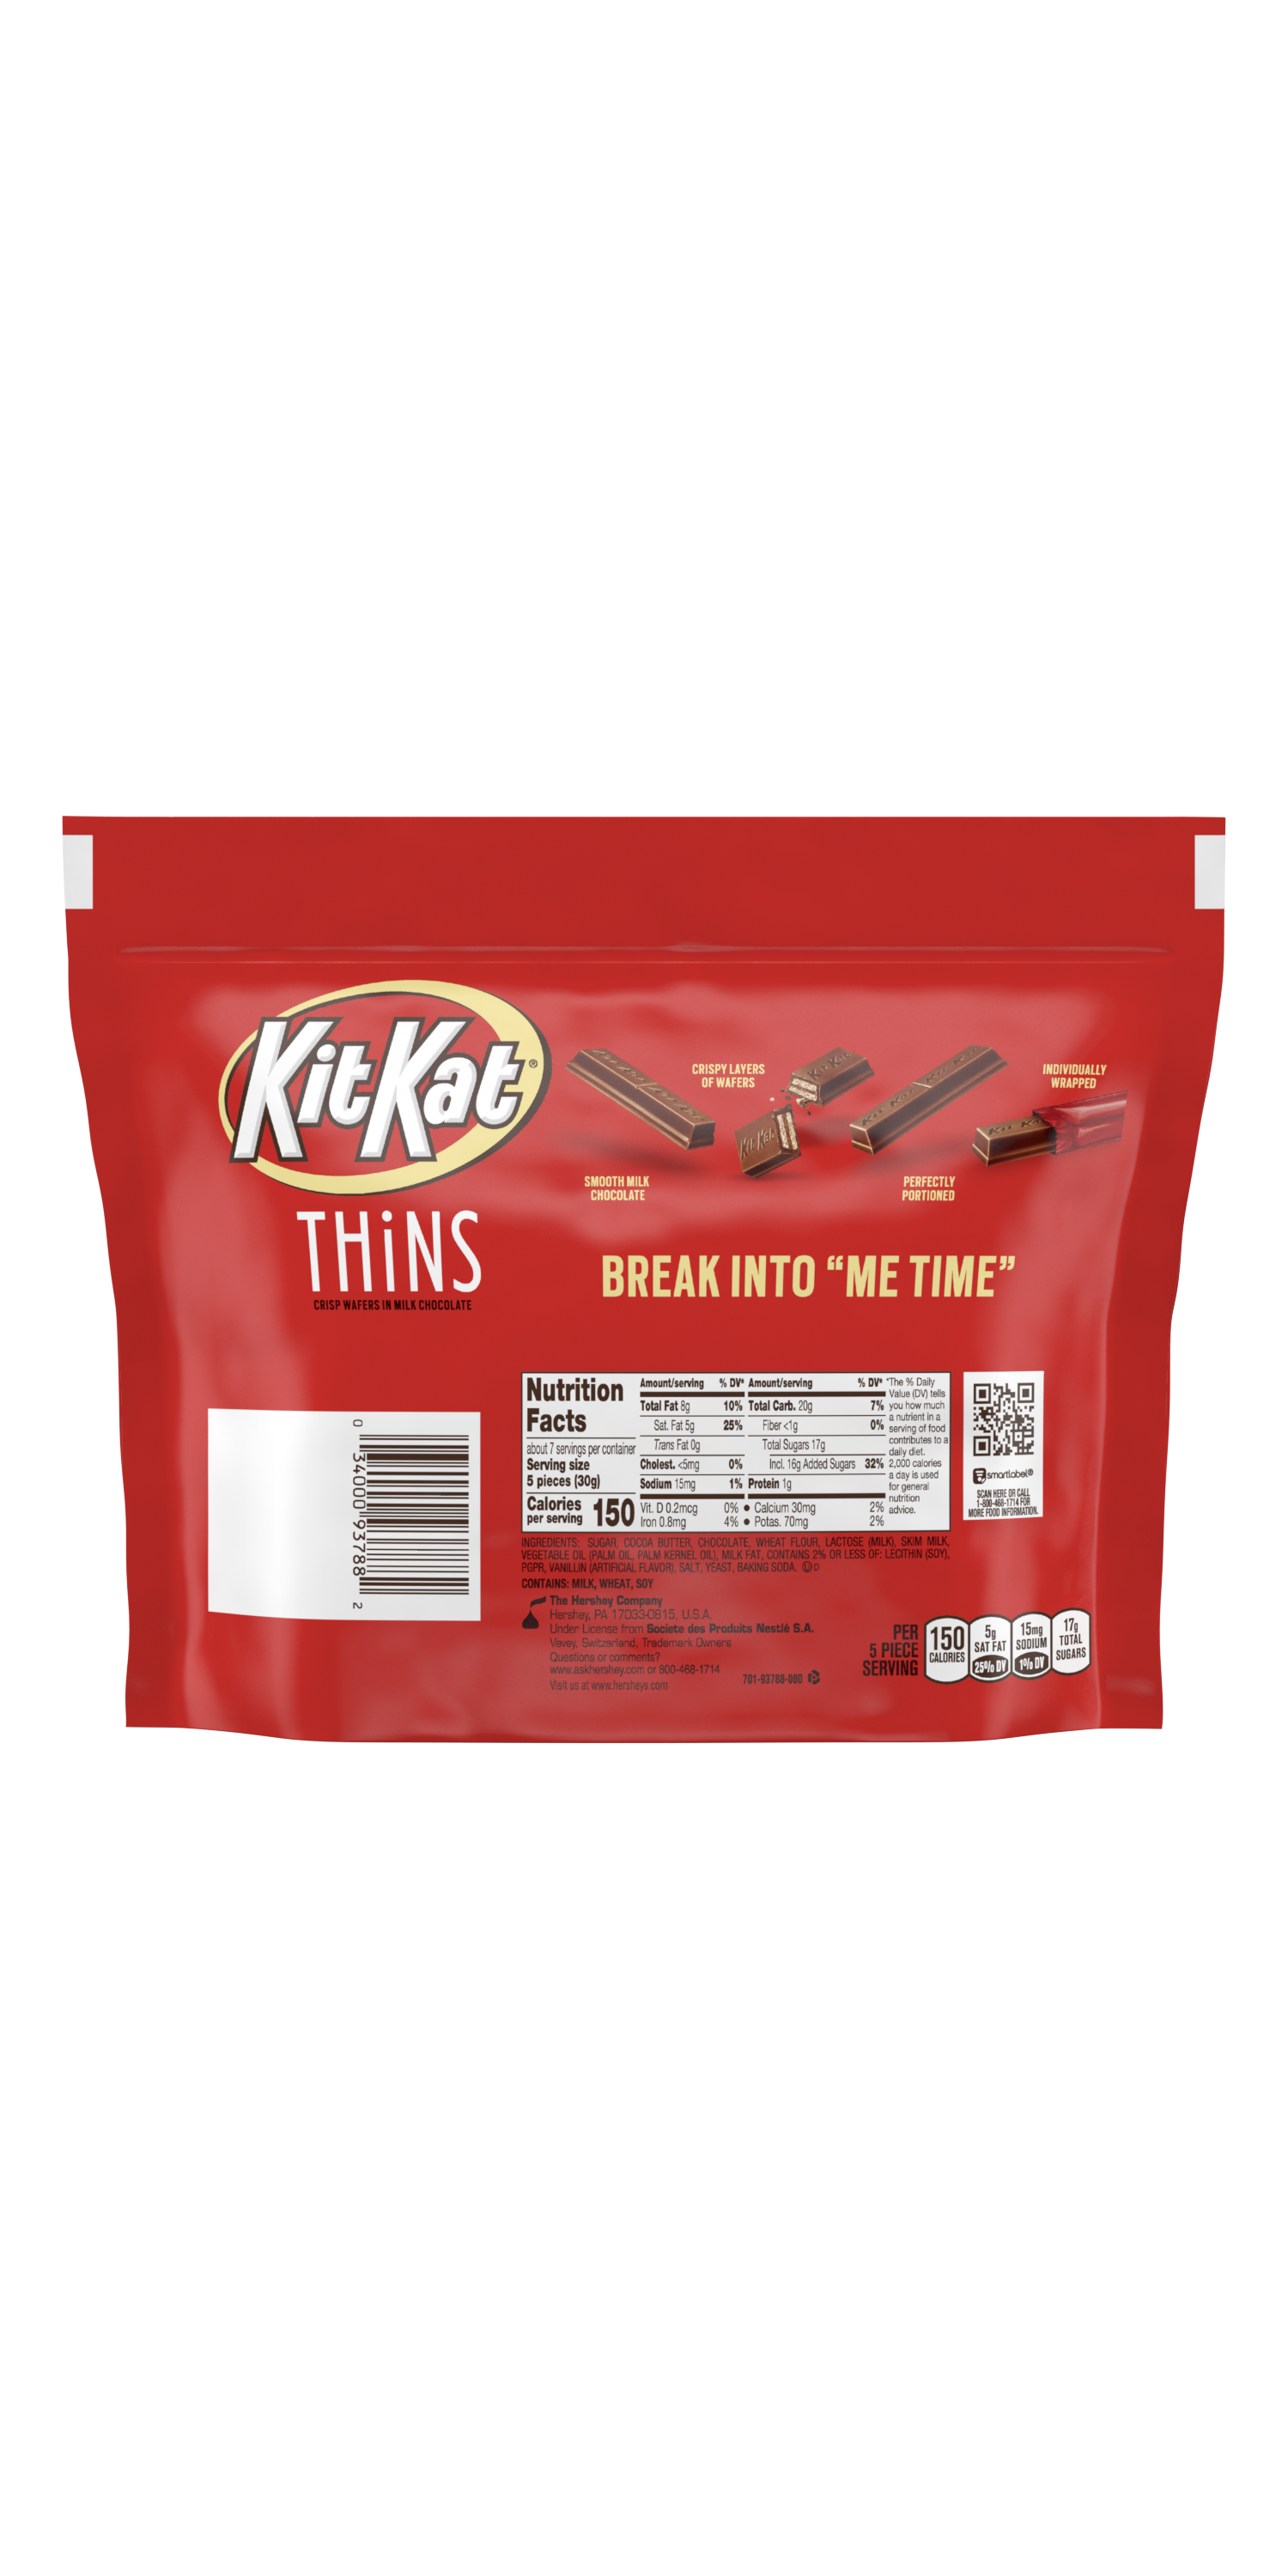 KIT KAT® THiNS Milk Chocolate Candy Bars, 7.37 oz pack - Back of Package